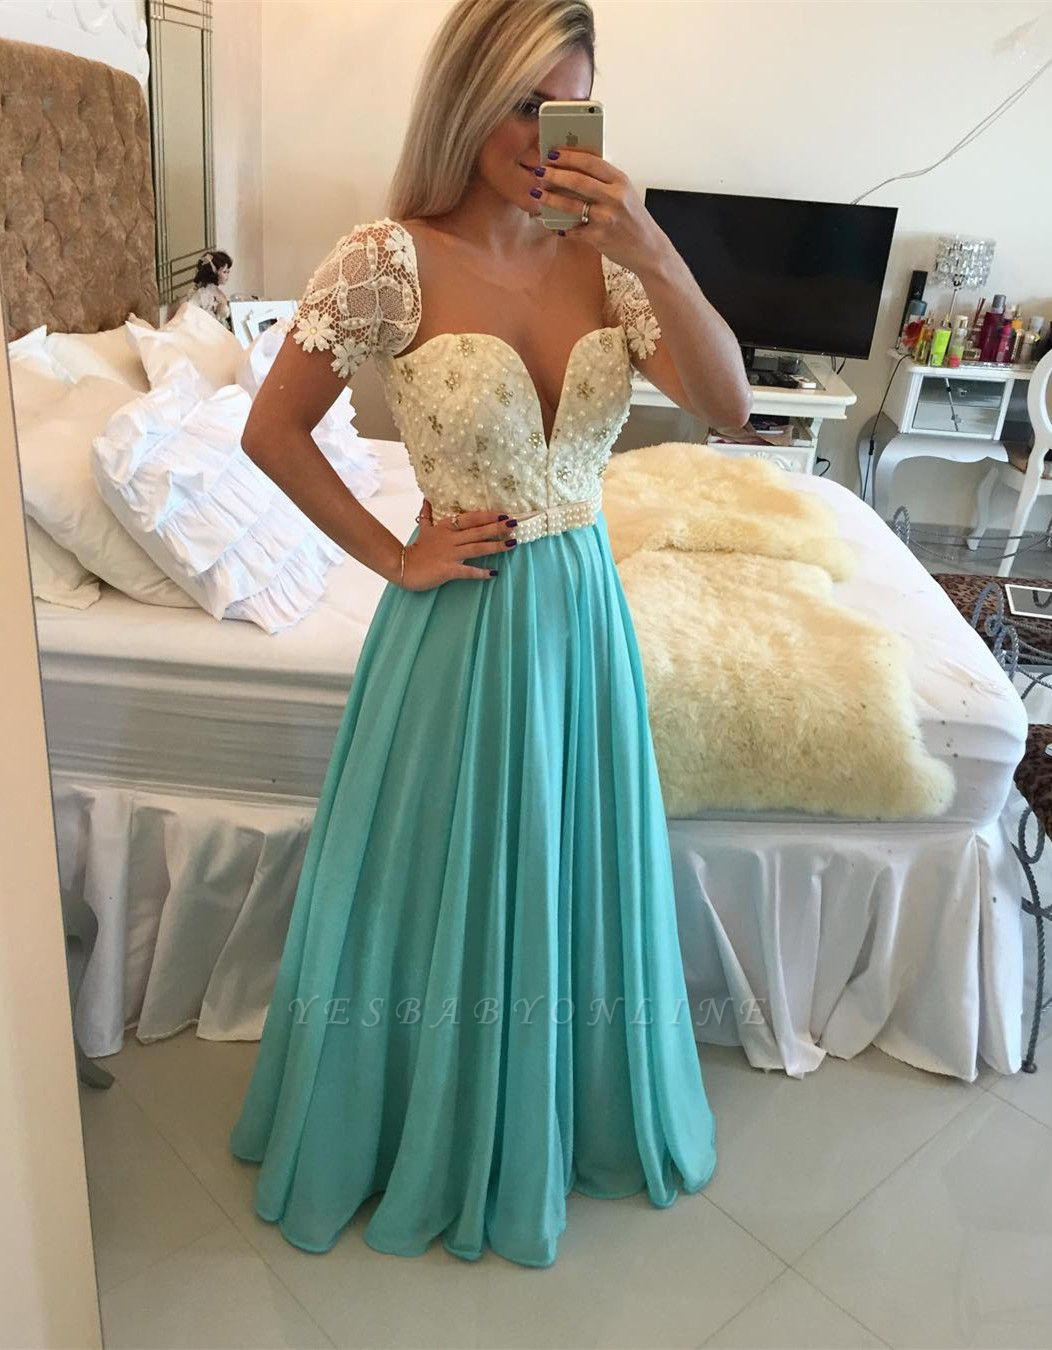 Lace Pearls  Modest A-line Short-Sleeve Prom Dress